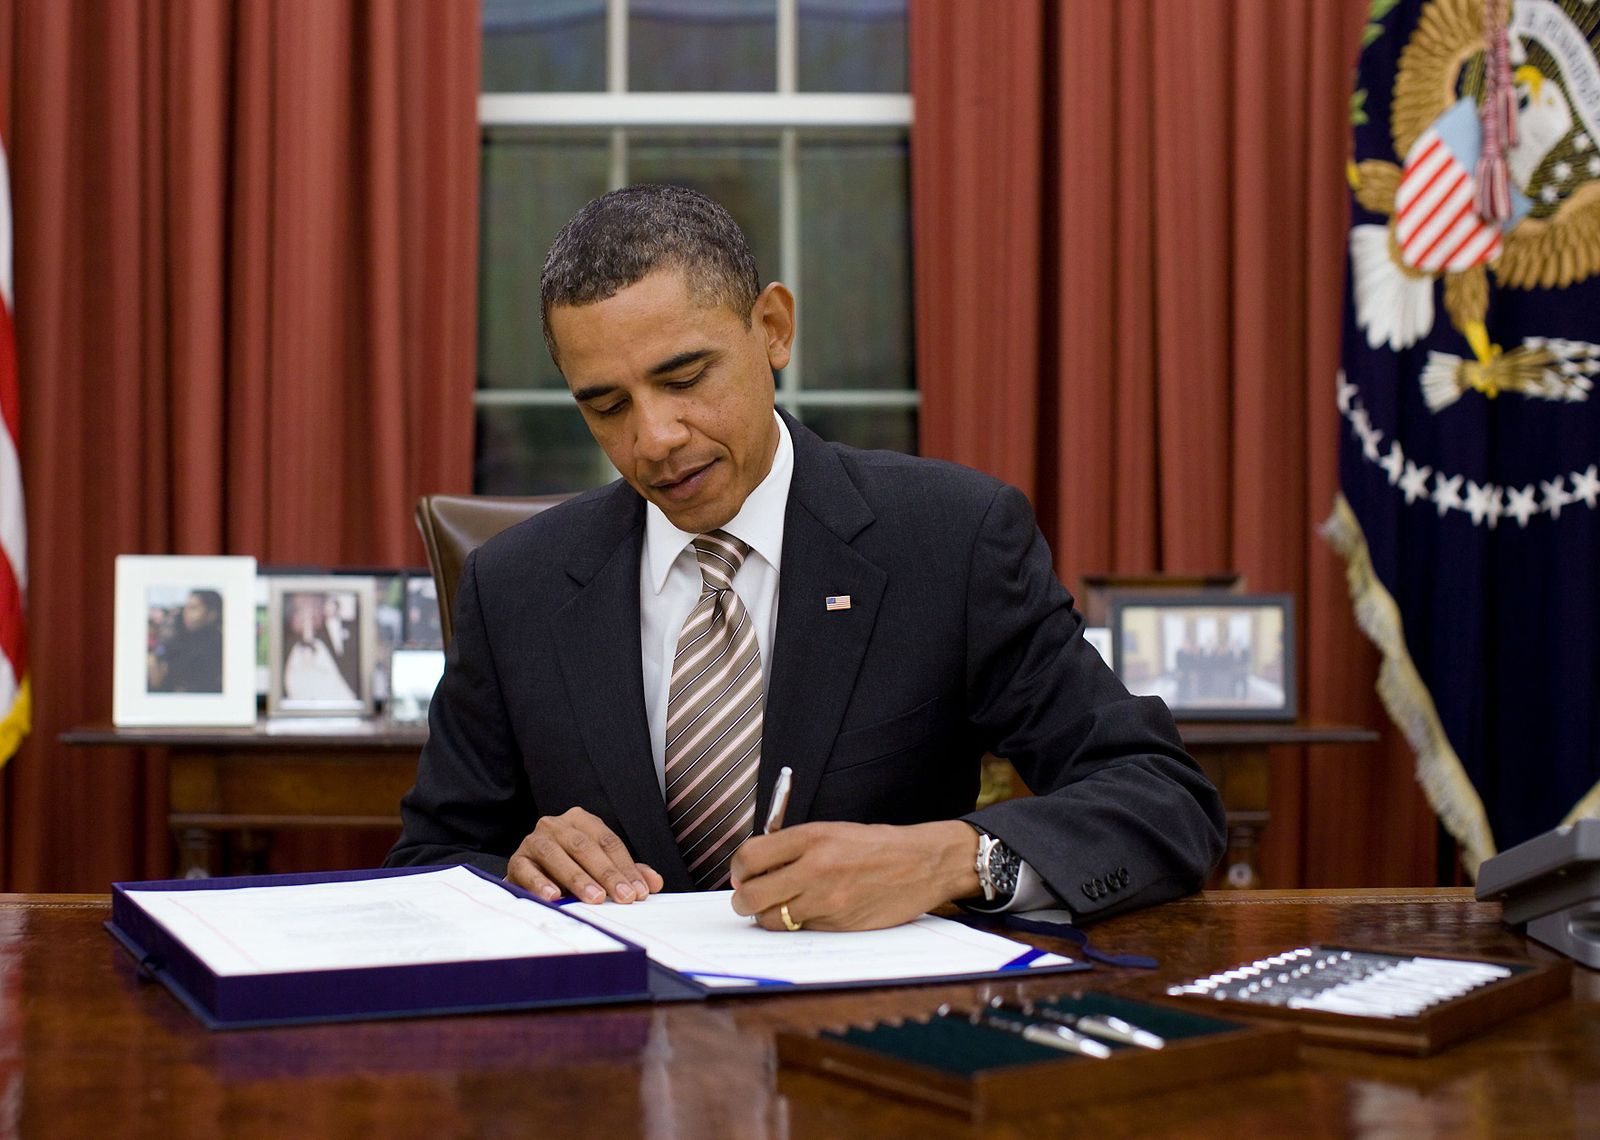 In 2011, President Obama signed The Food Safety Modernization Act (FSMA), the first major piece of federal legislation addressing food safety since 1938.  Image source